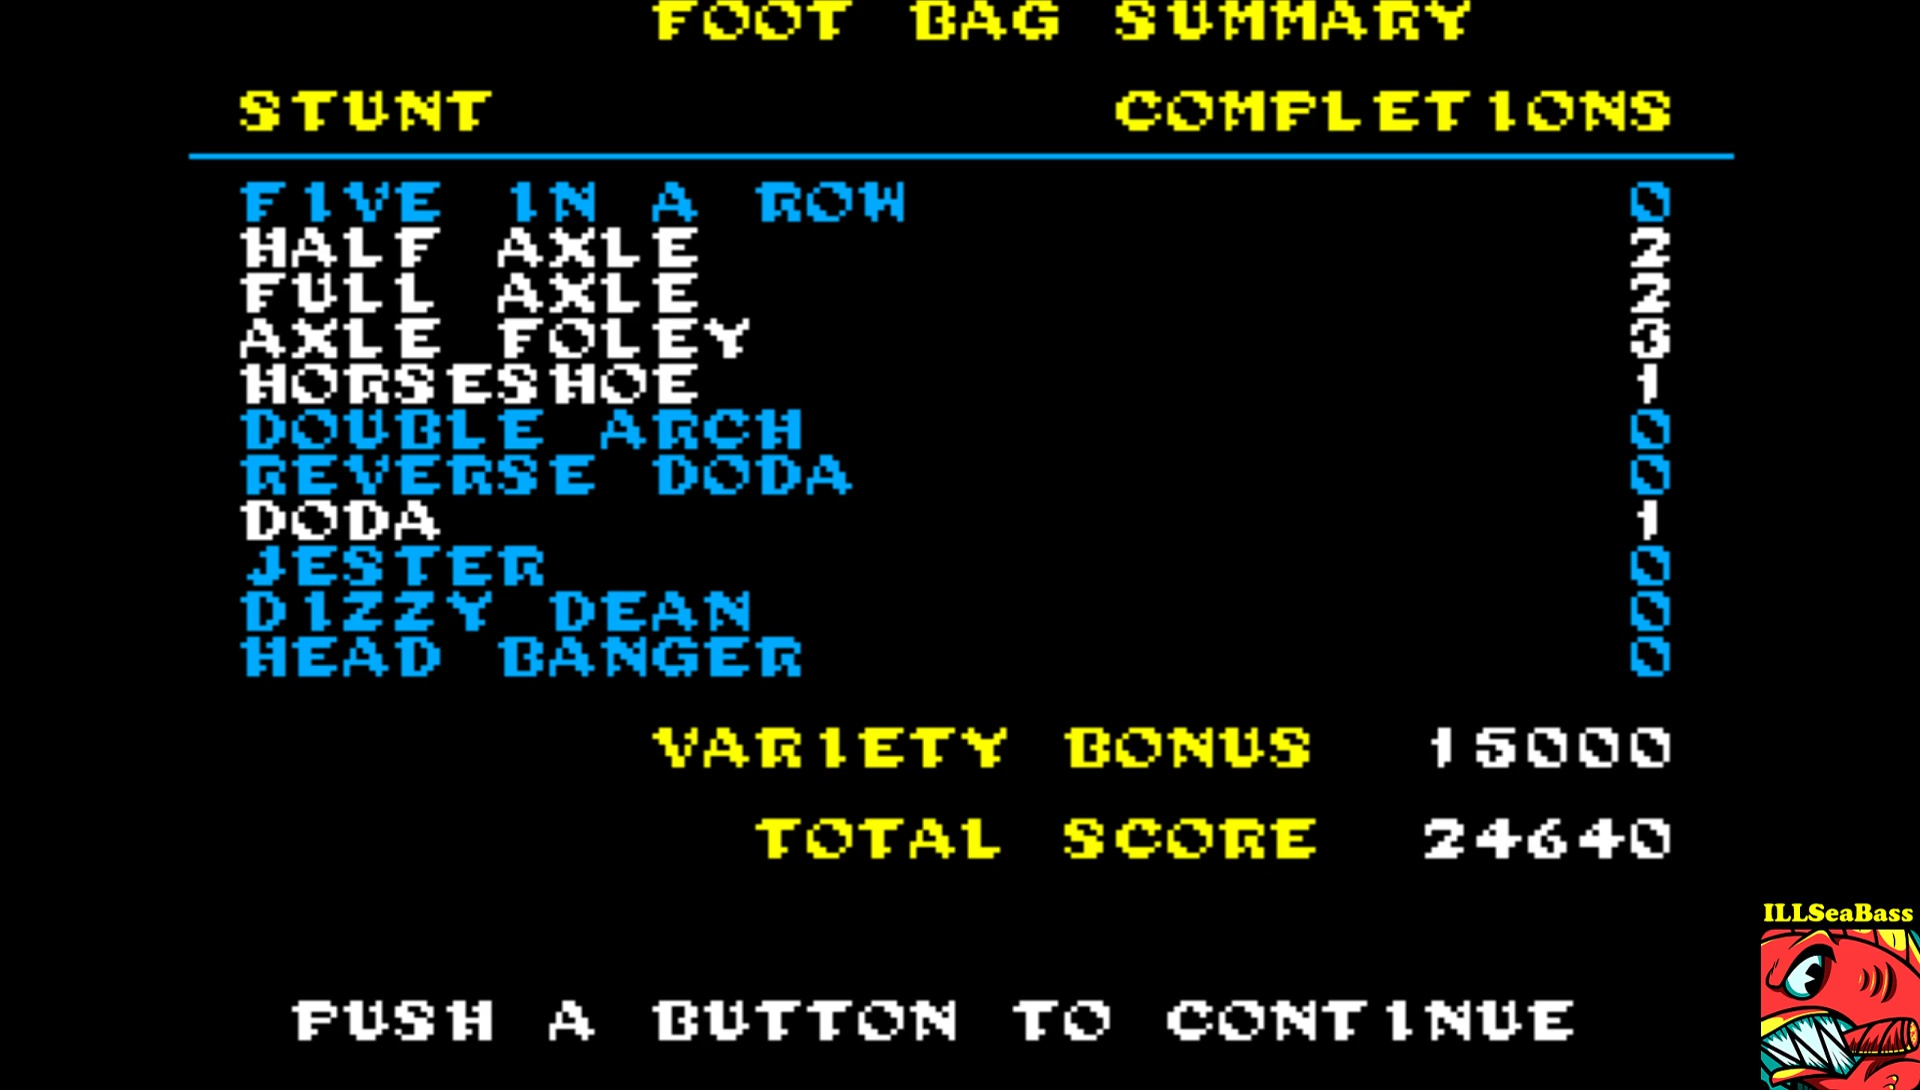 ILLSeaBass: California Games: Foot Bag (Sega Master System Emulated) 24,640 points on 2017-03-27 19:38:44